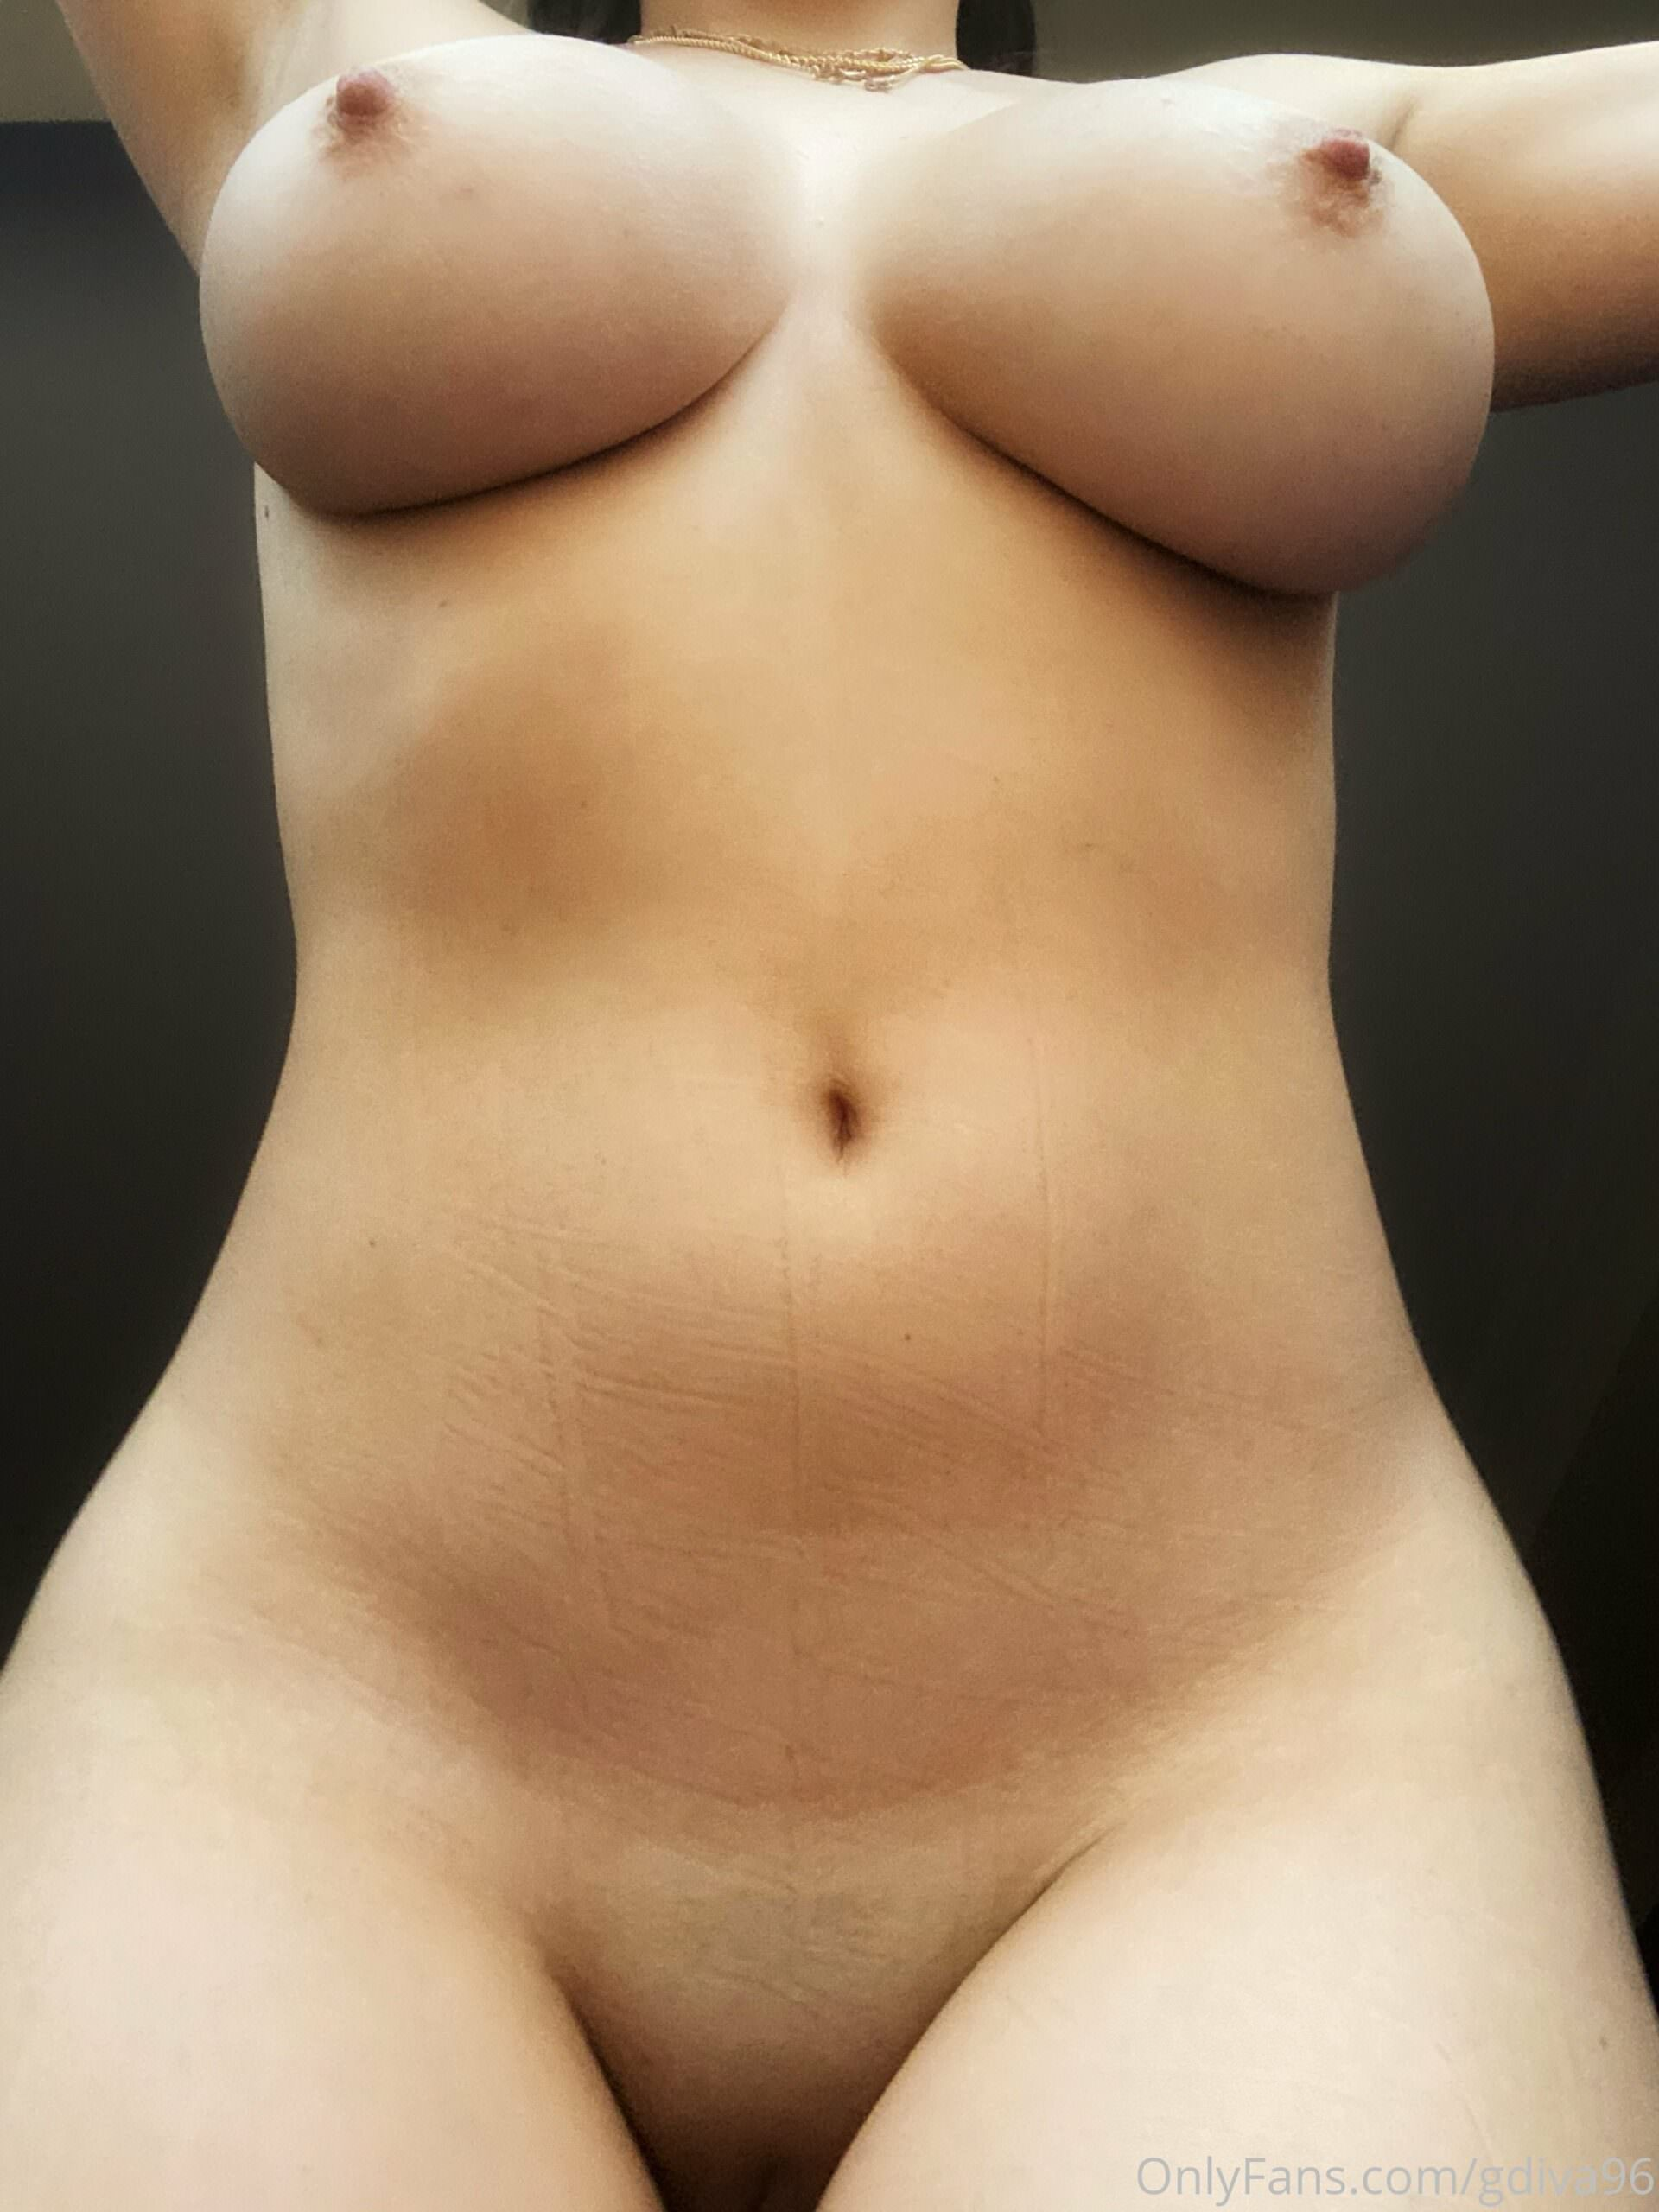 FULL VIDEO: GDiva96 Nude & Sex Tape Onlyfans Leaked!